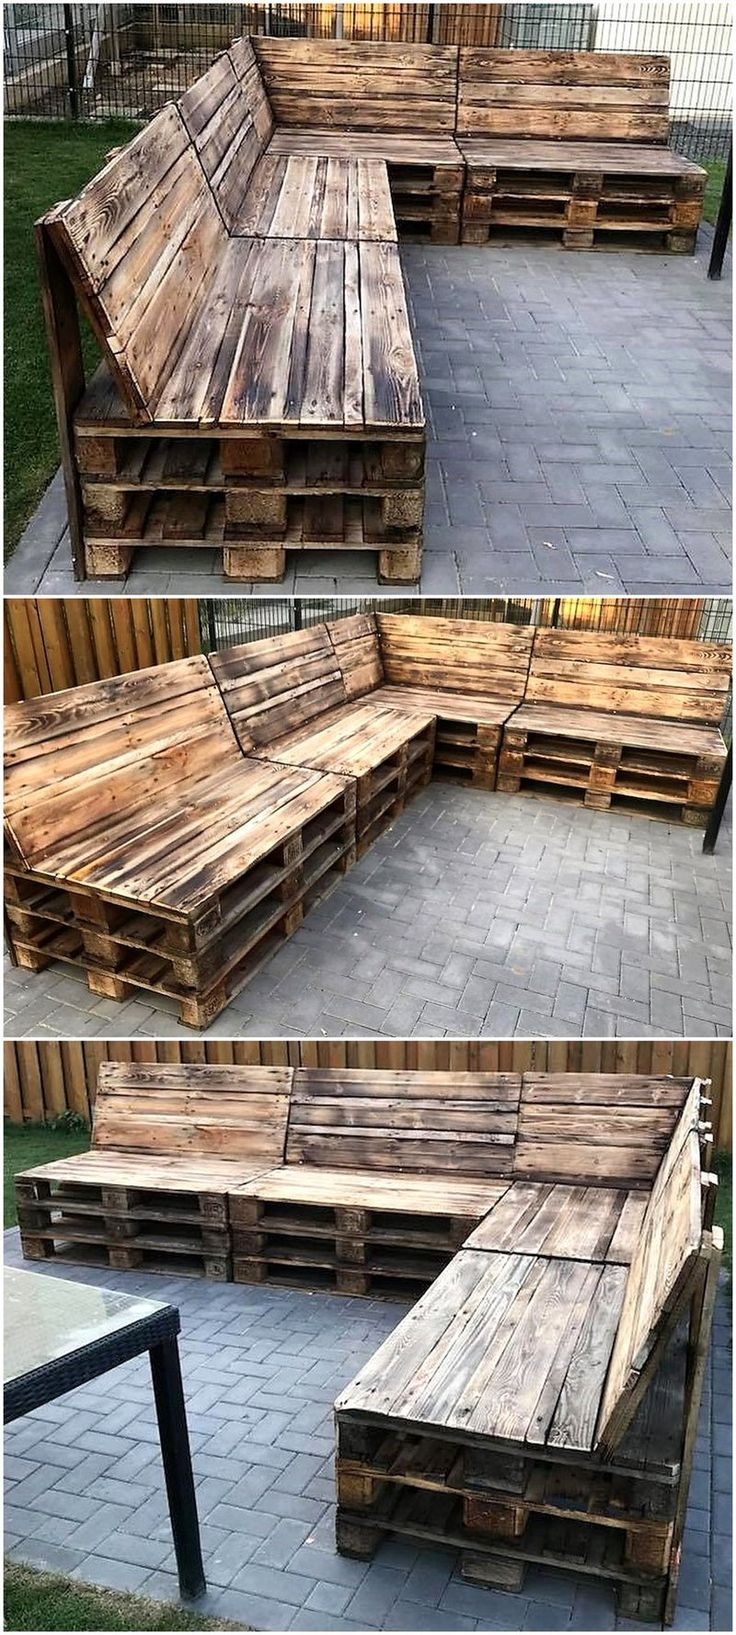 50 Unique Diy Projects With Wood Pallets Holzprojekte Diy